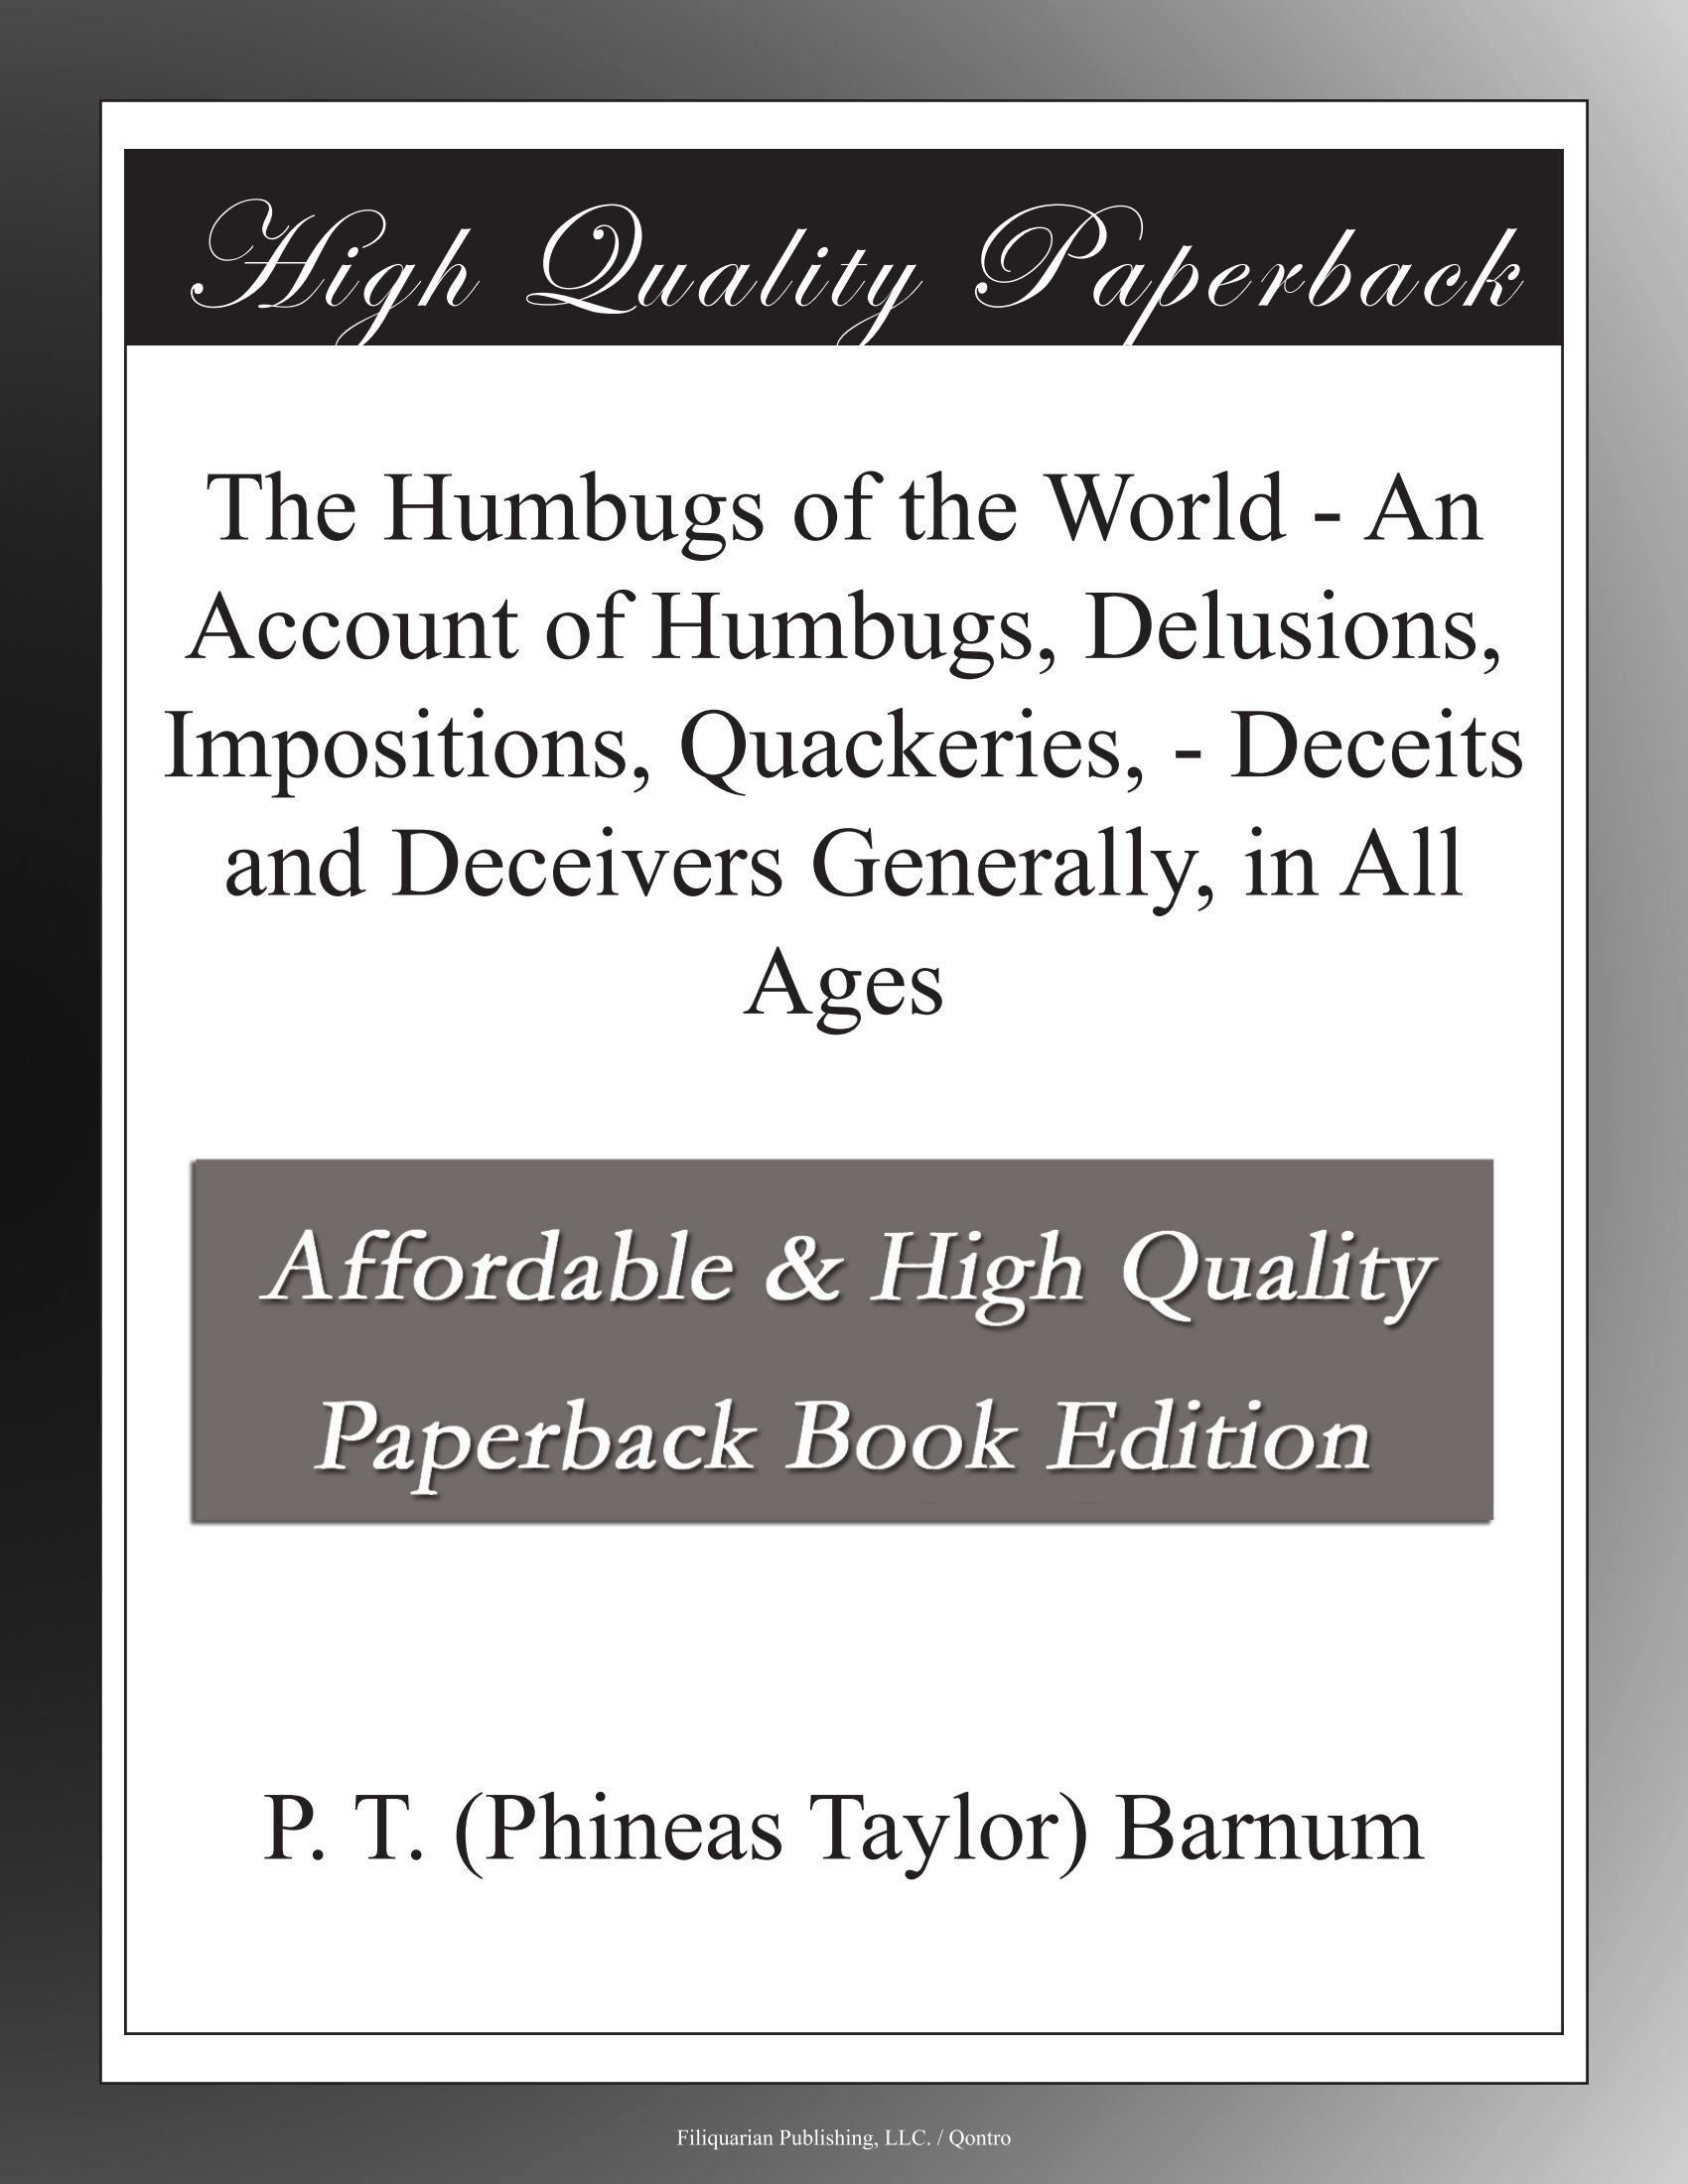 The Humbugs of the World - An Account of Humbugs, Delusions, Impositions, Quackeries, - Deceits and Deceivers Generally, in All Ages pdf